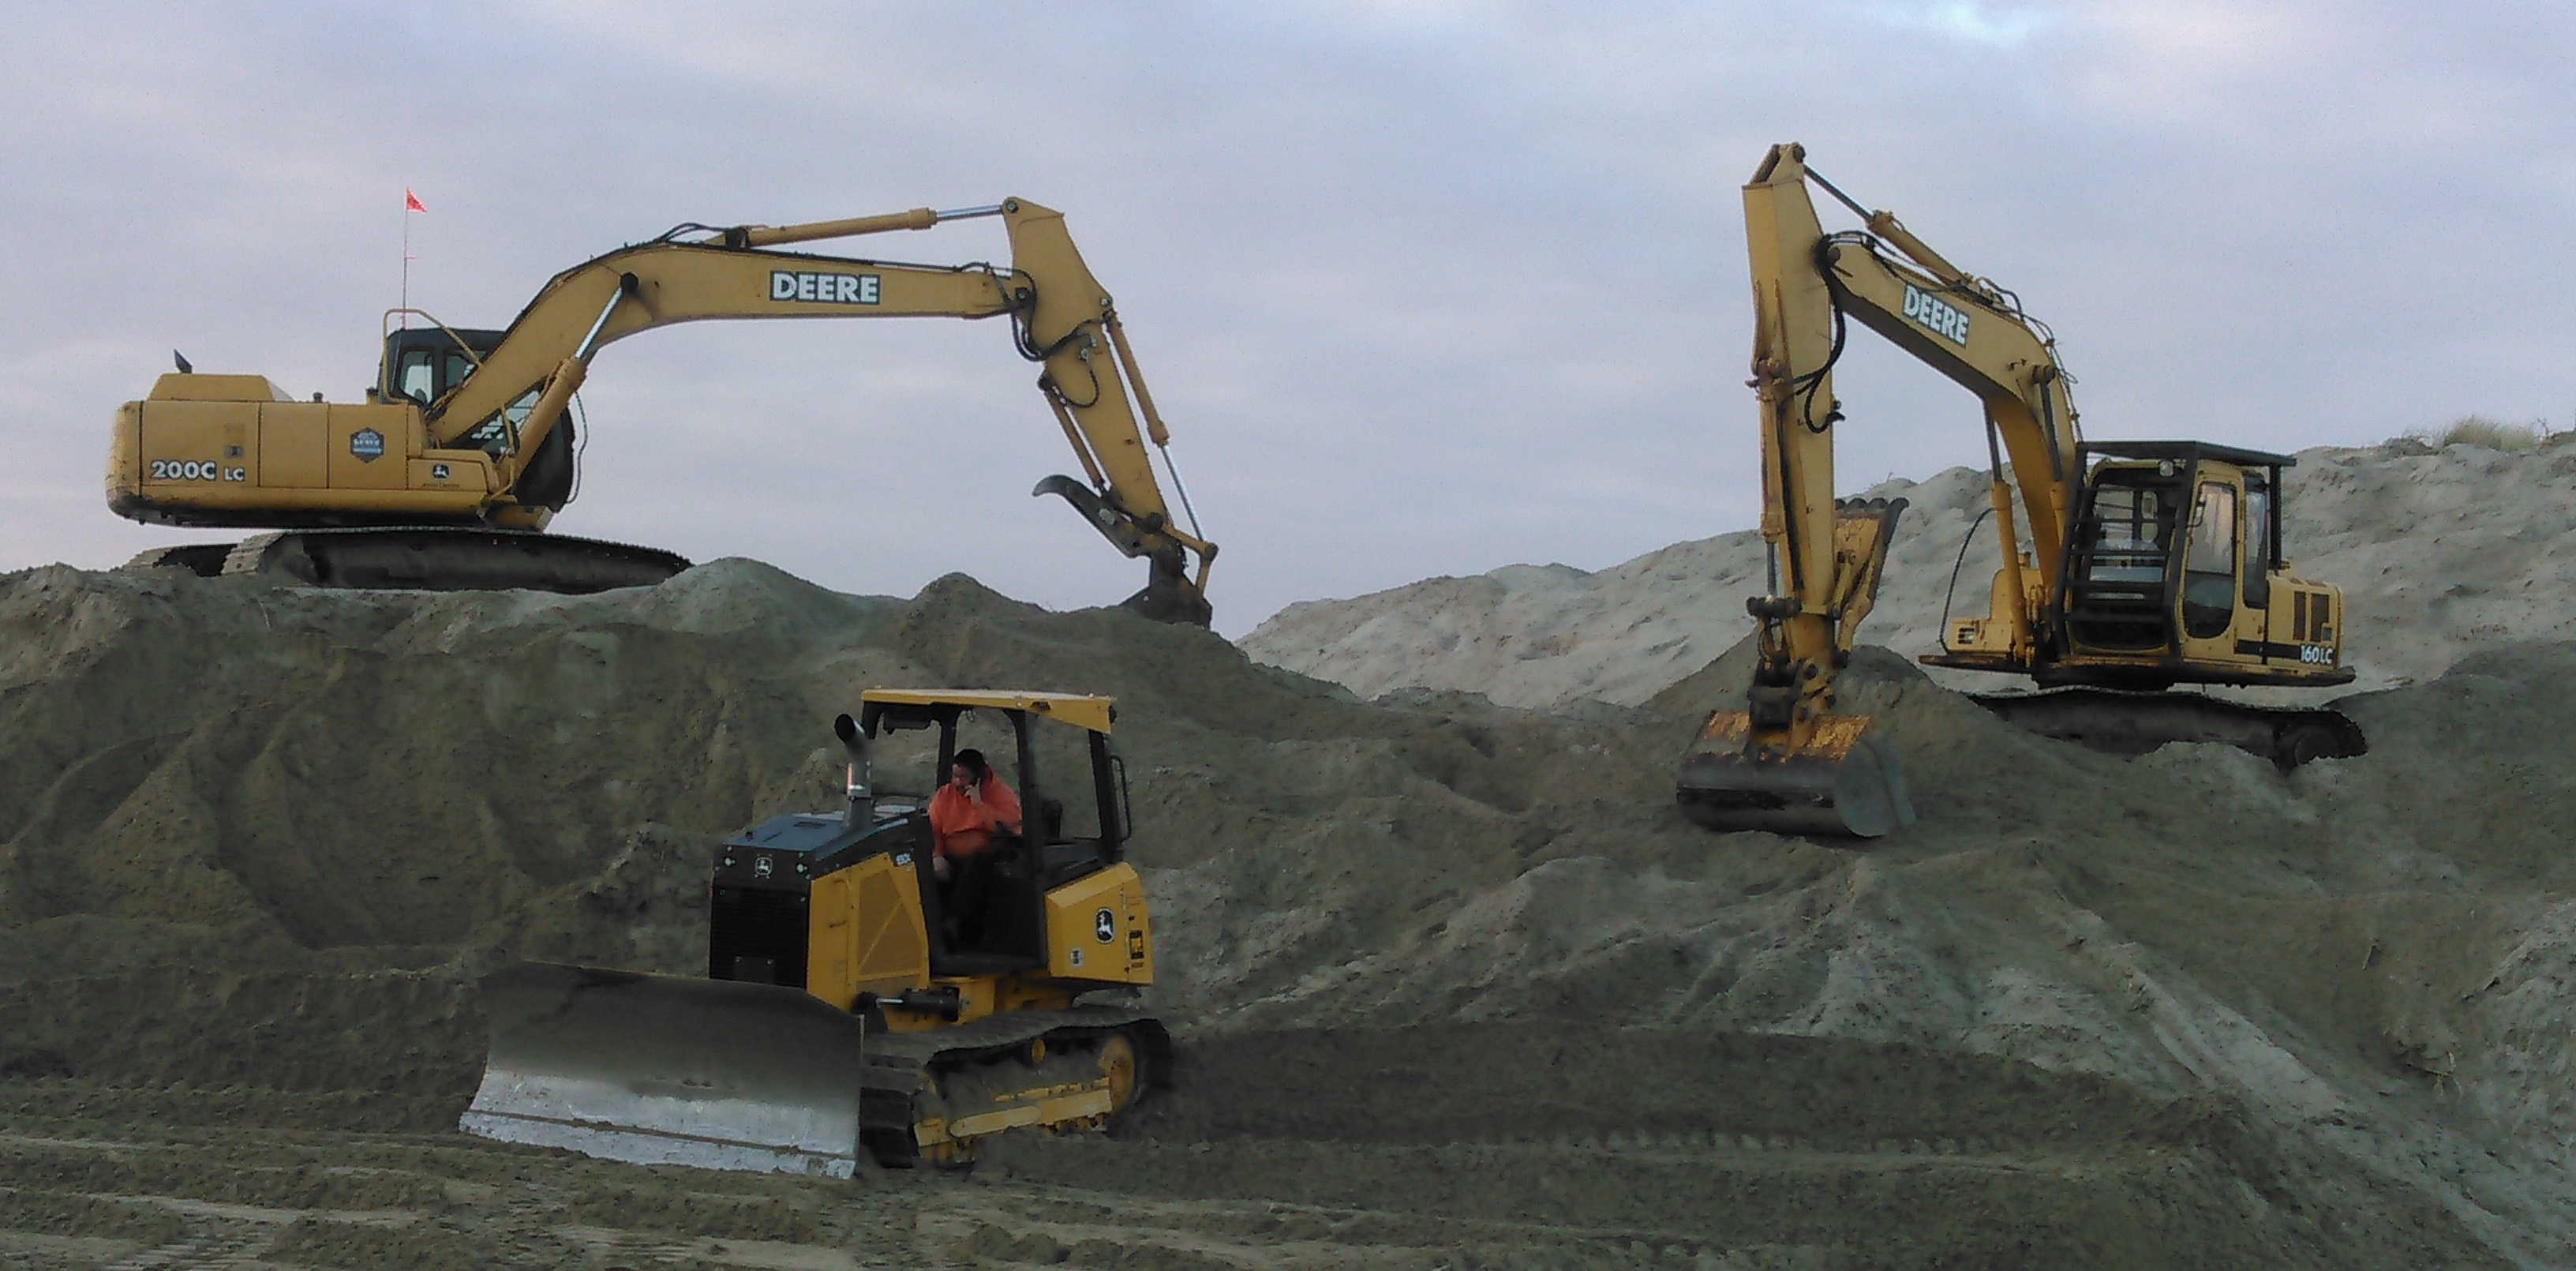 A hillside of sand and dirt with heavy machinery present.